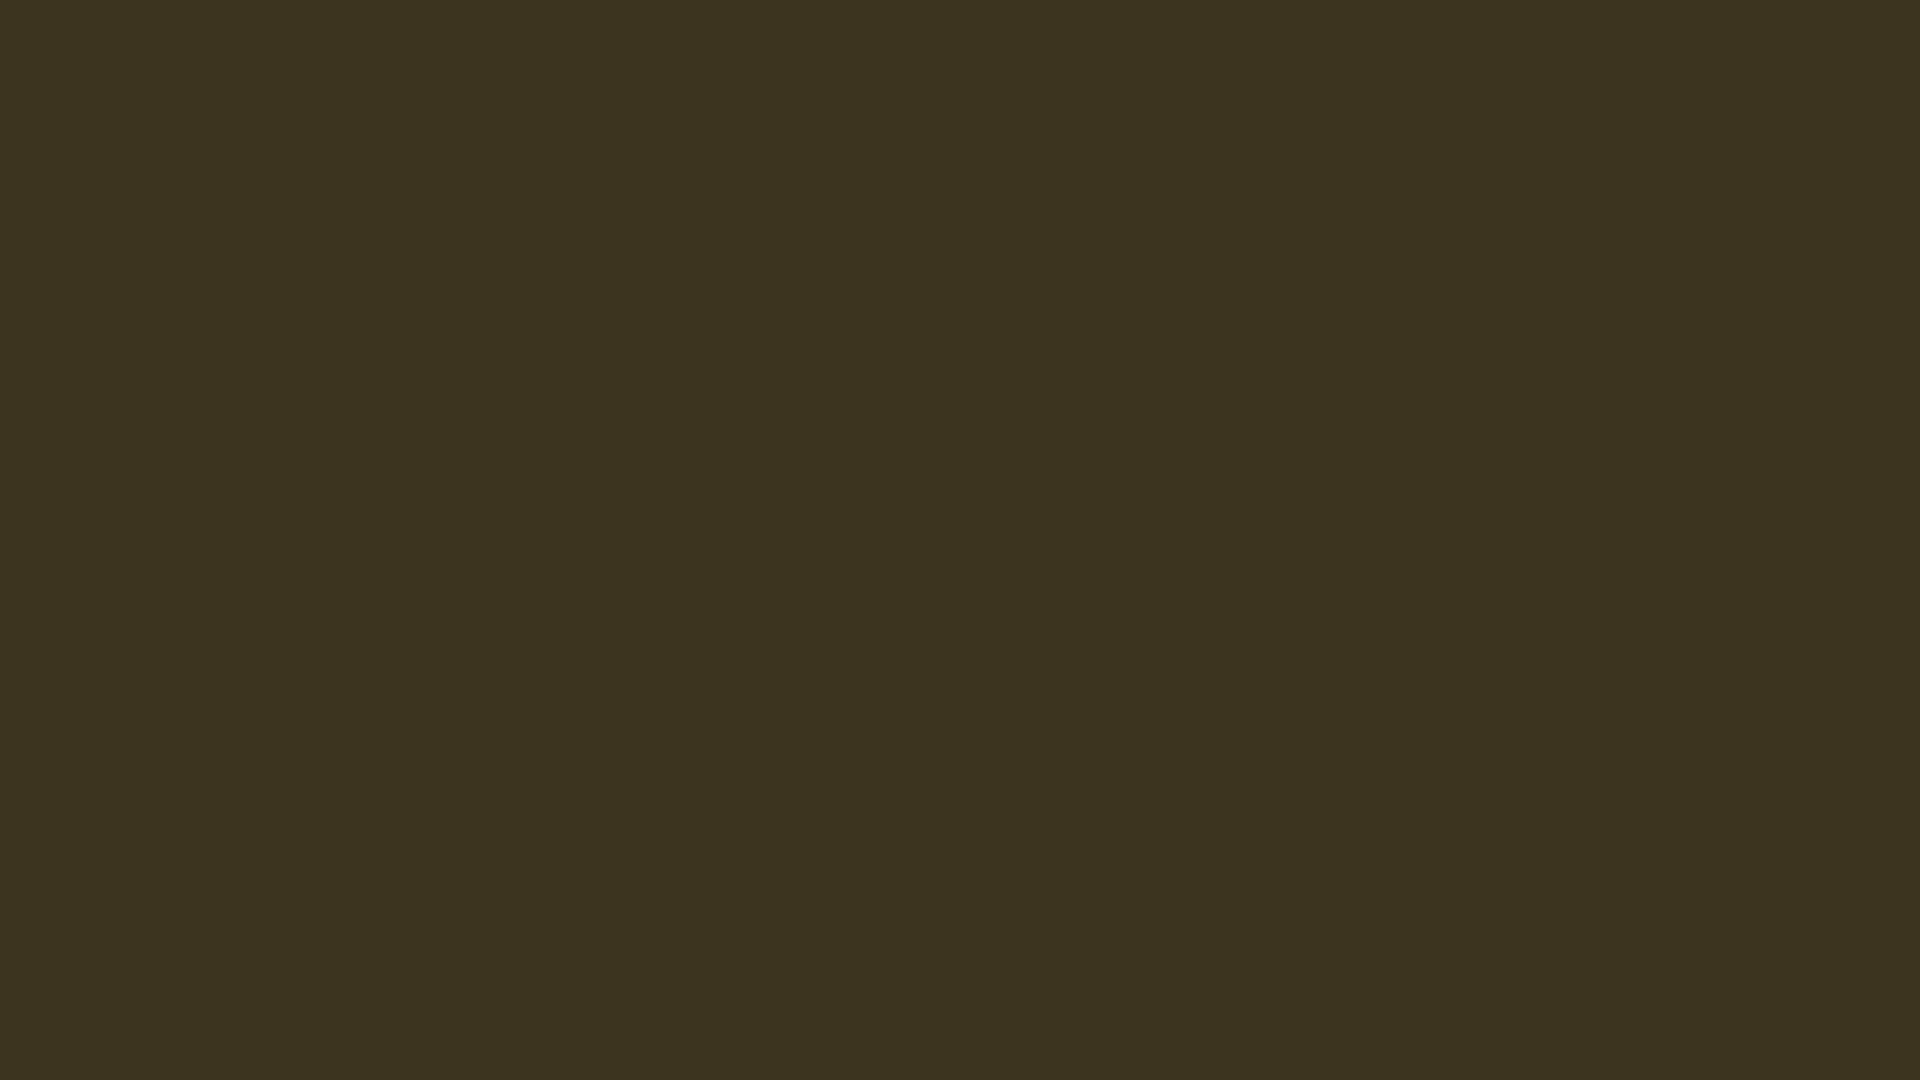 1920x1080 Olive Drab Number Seven Solid Color Background